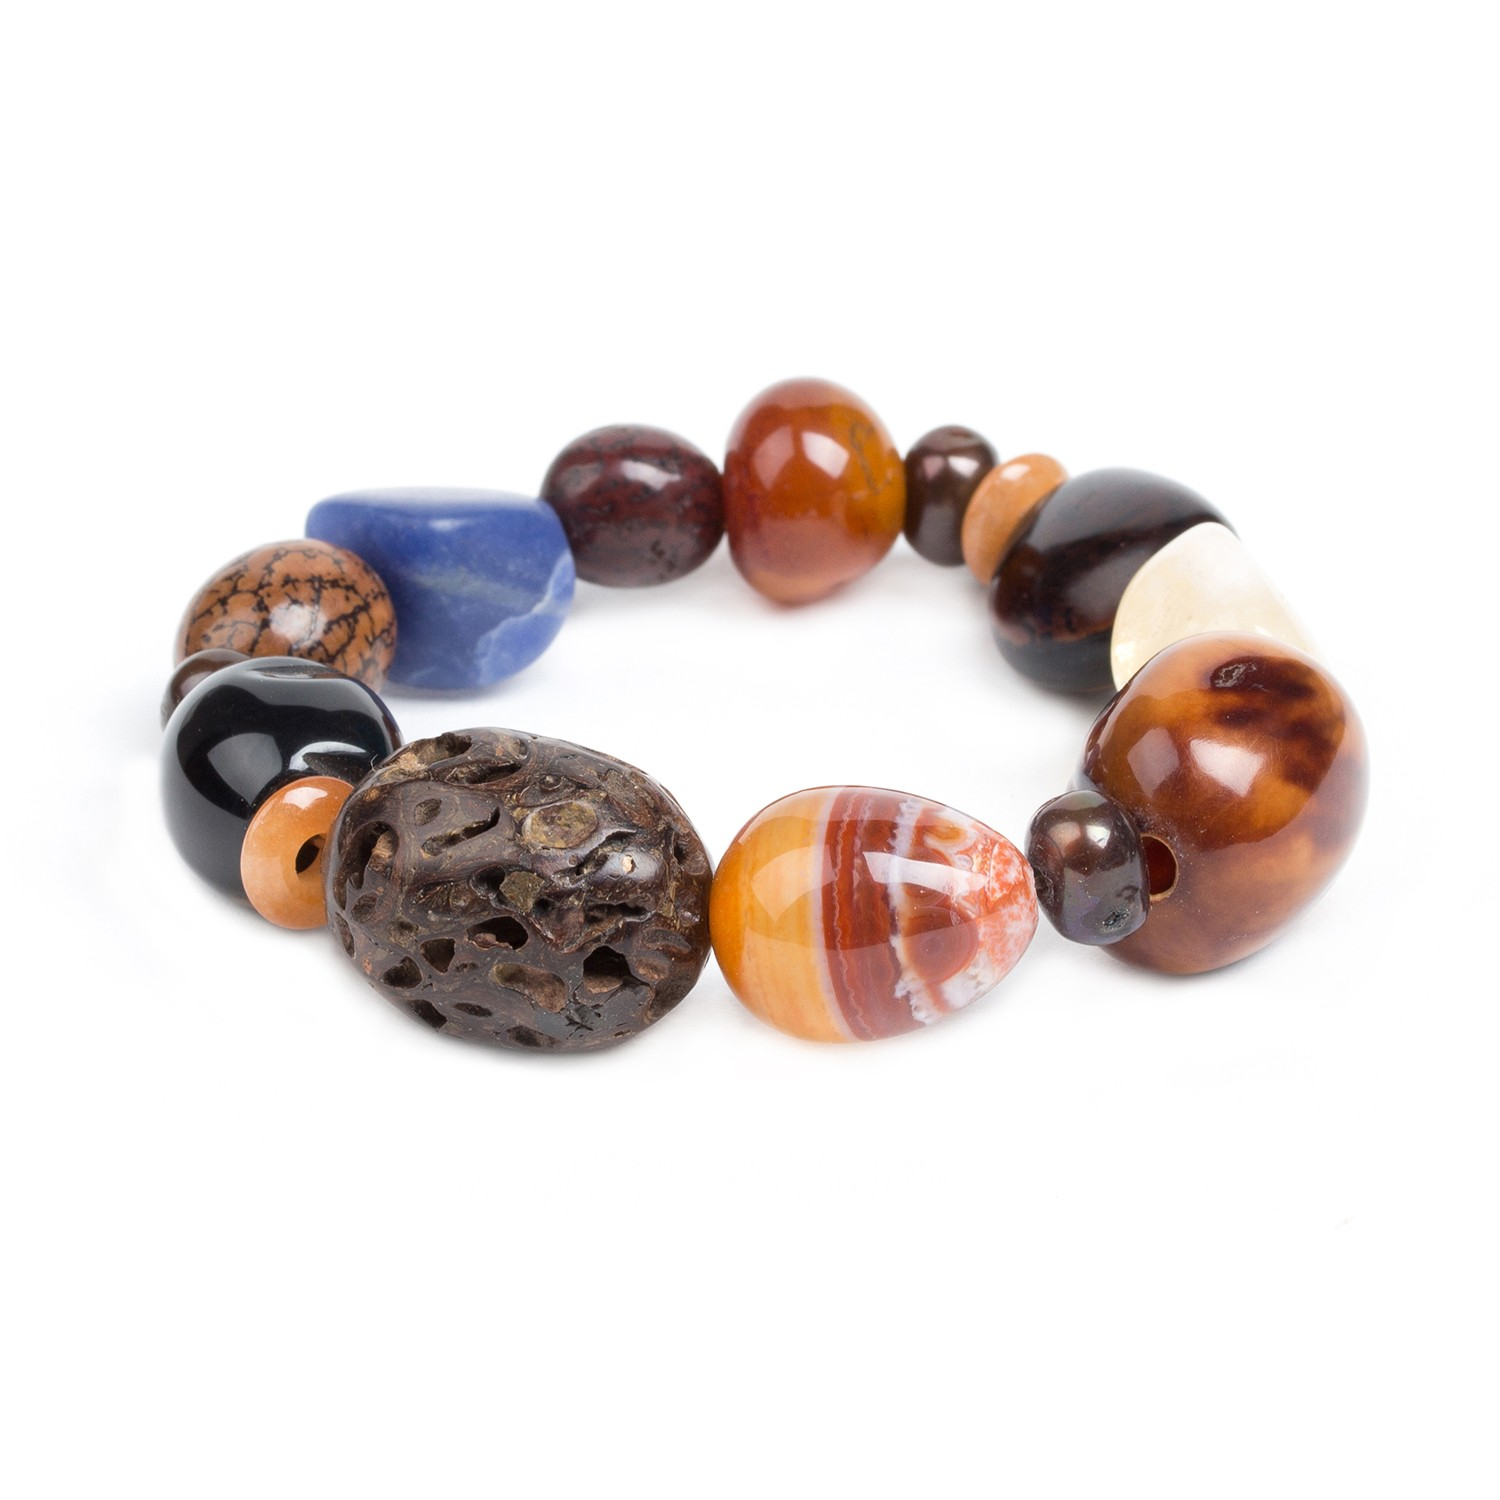 MALAWI big stretch bracelet